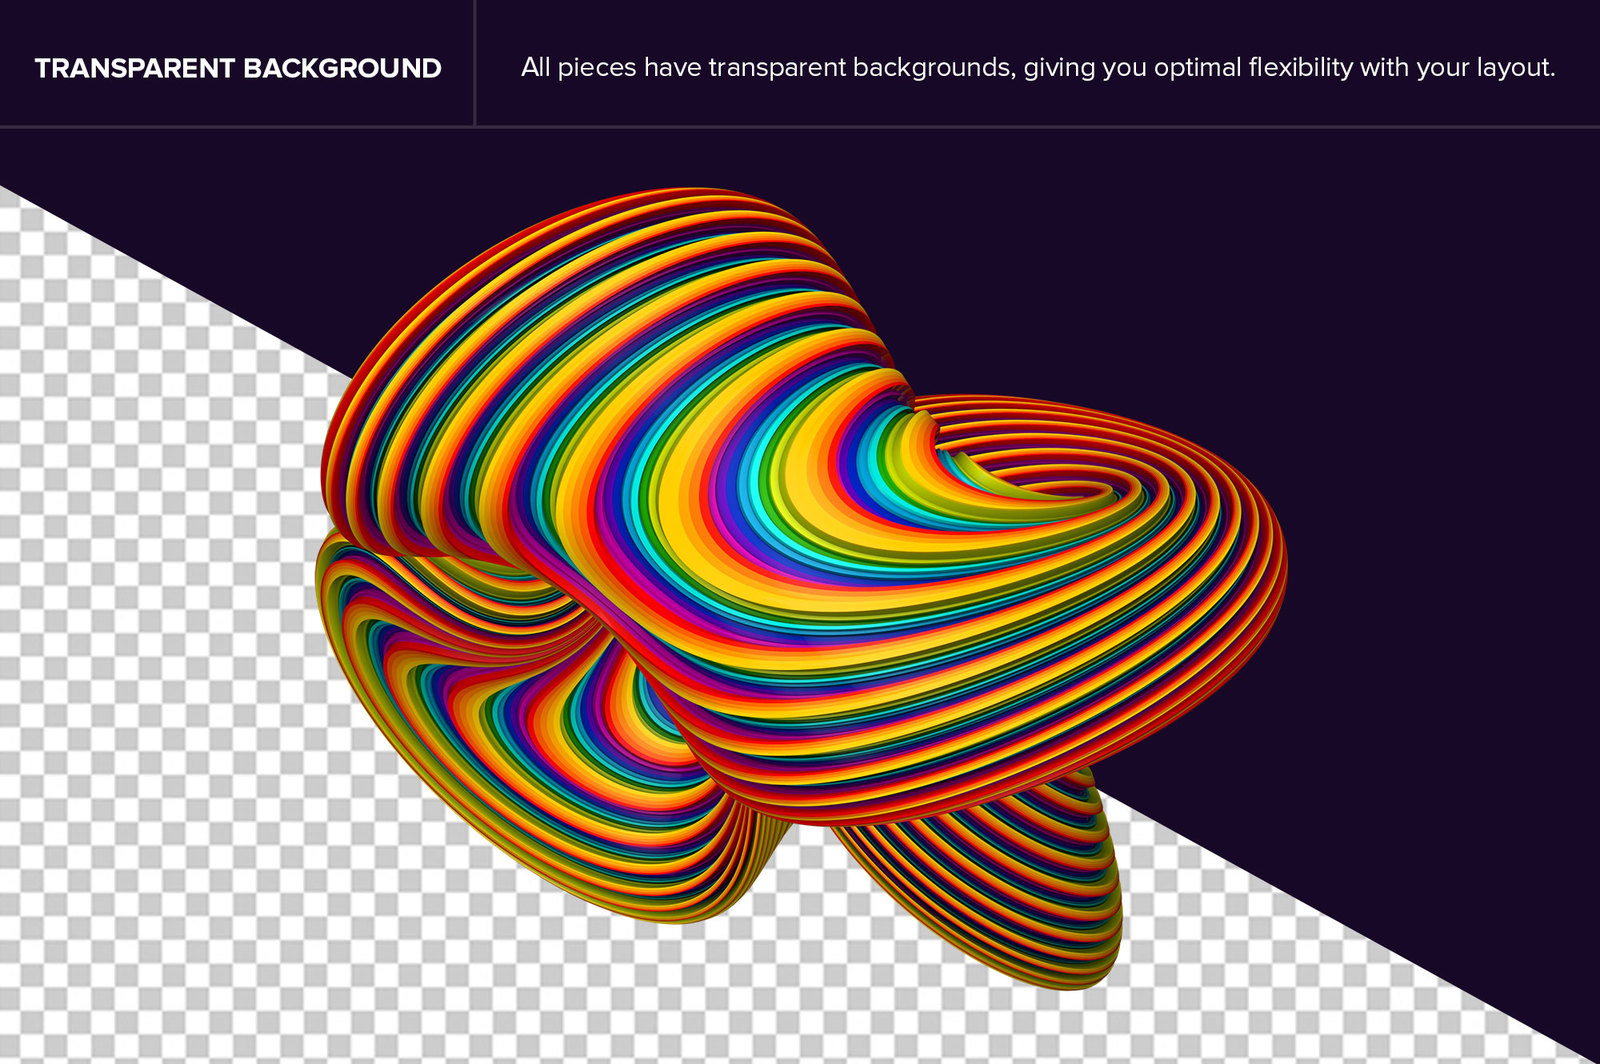 Coiled: Dynamic 3D Shapes